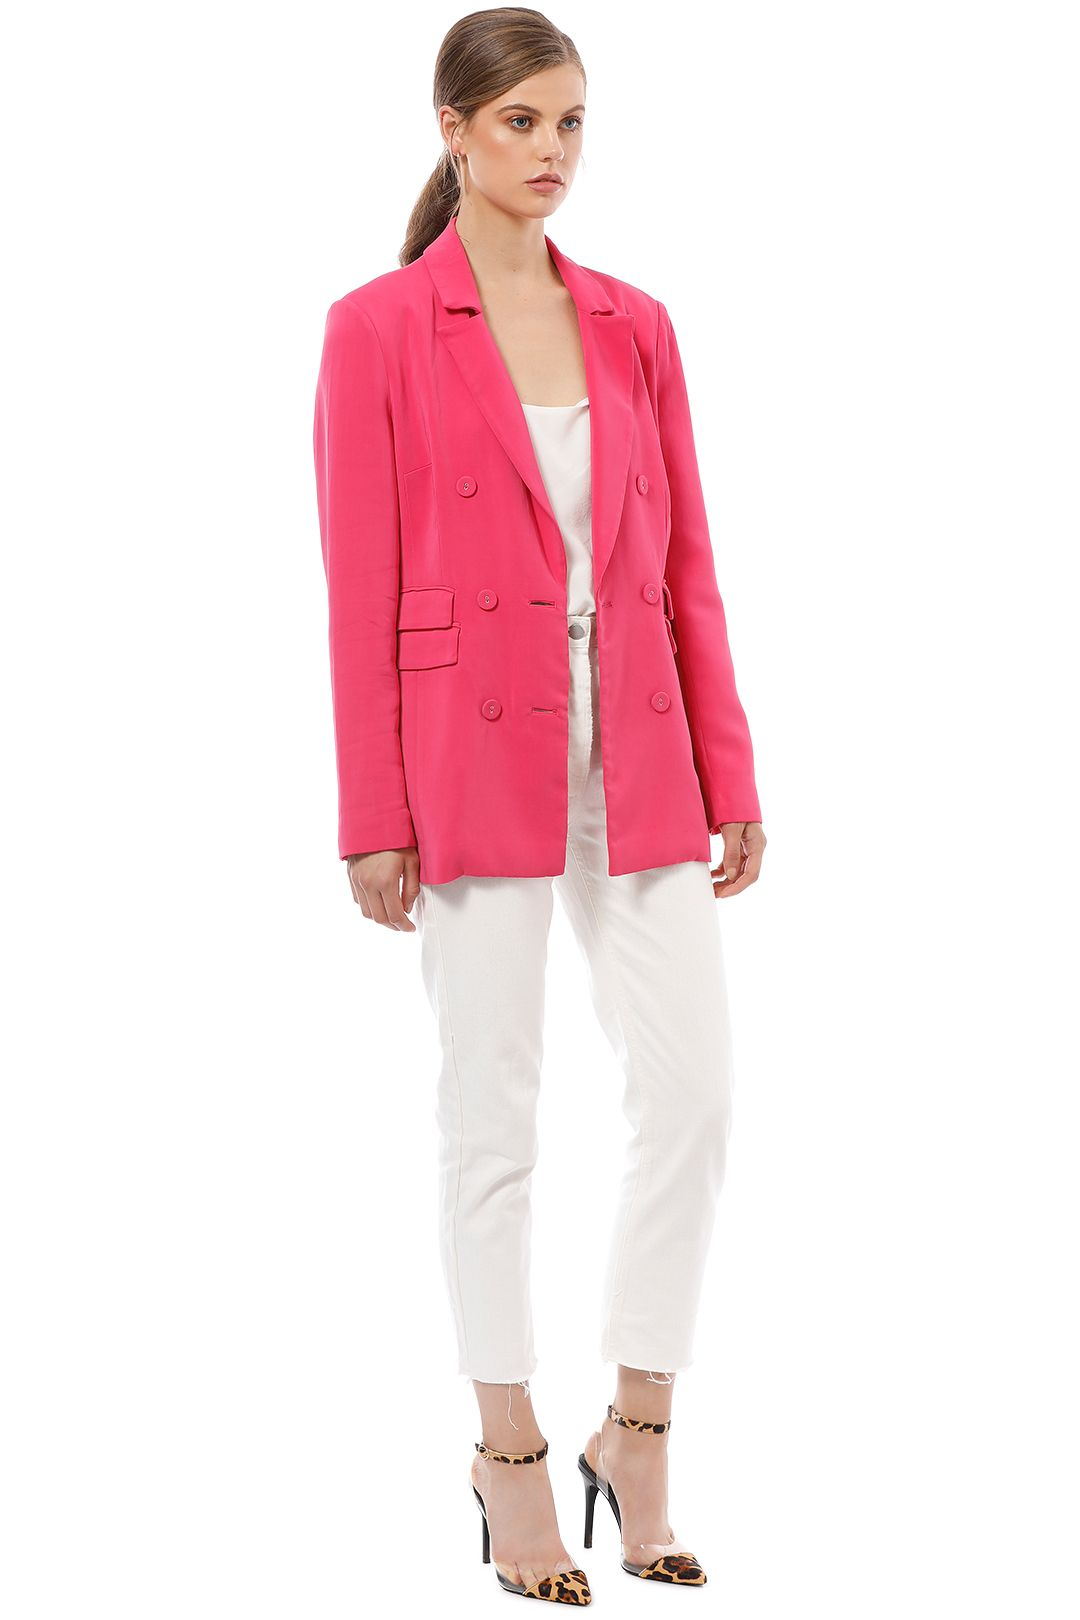 CMEO Collective - Own Light Blazer - Pink - Side